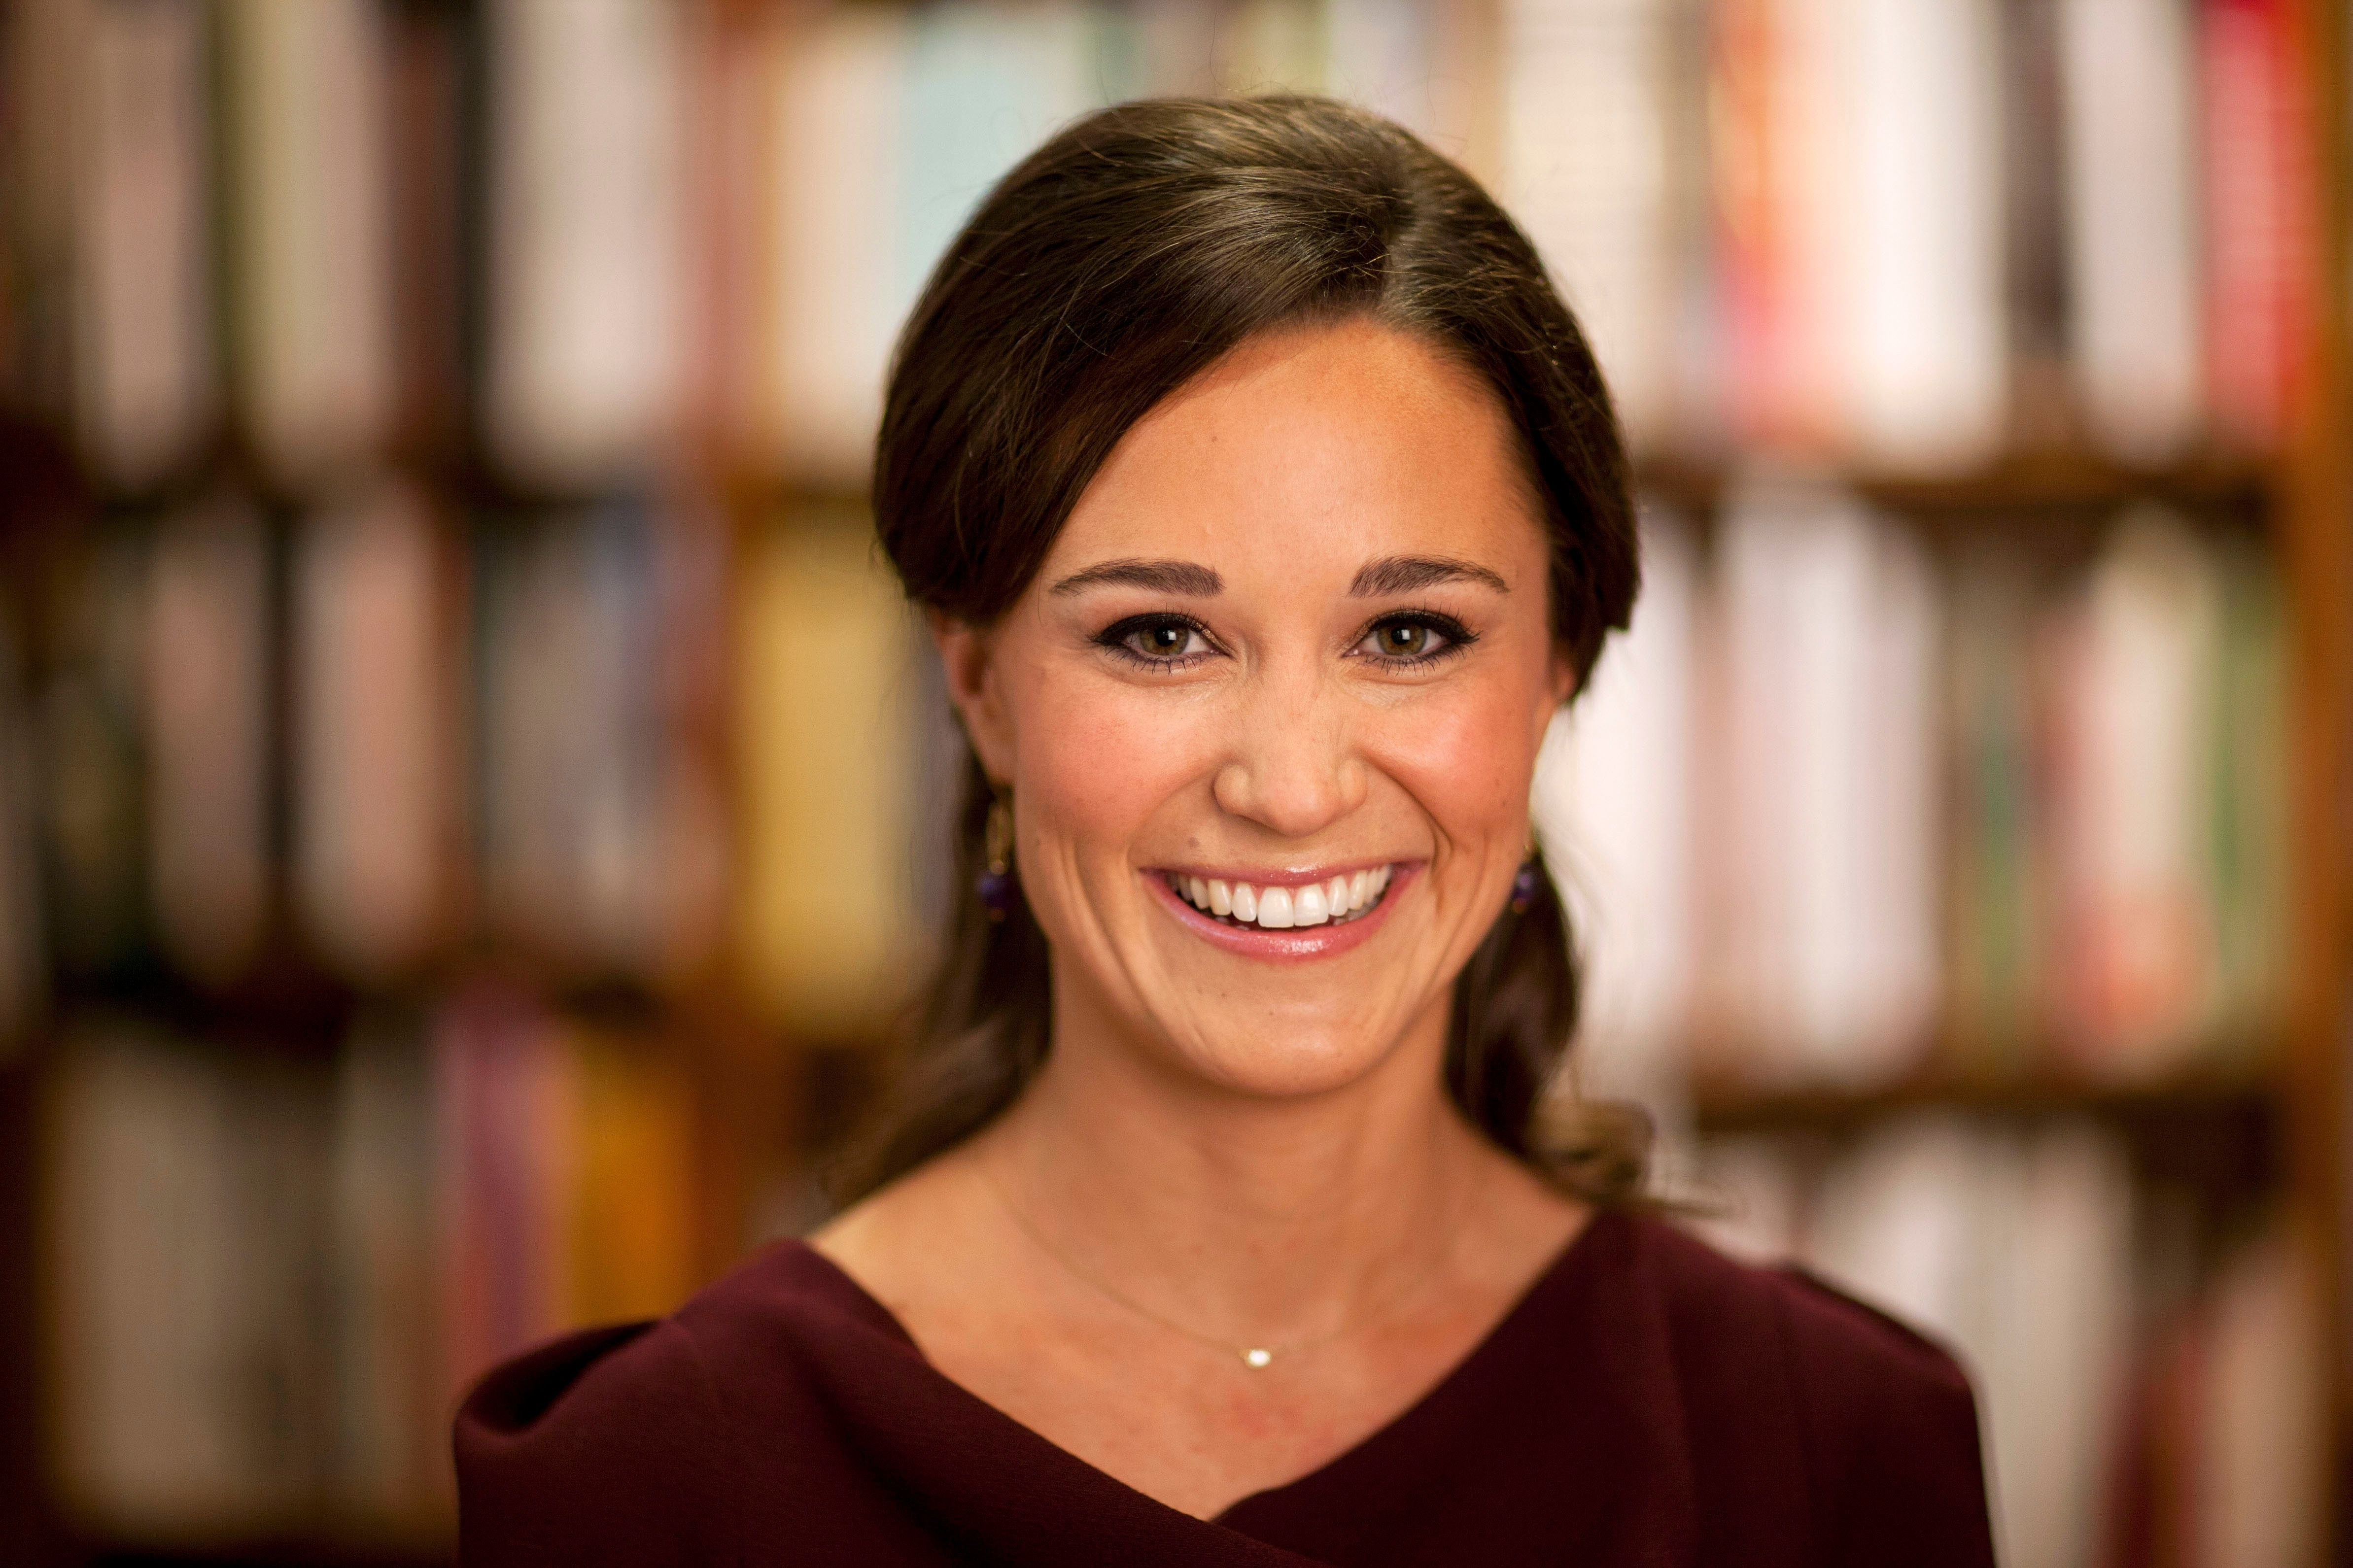 Pippa Middleton at the launch her new creative entertaining book 'Celebrate' at Fulham Road on October 25, 2012 | Photo: Getty Images